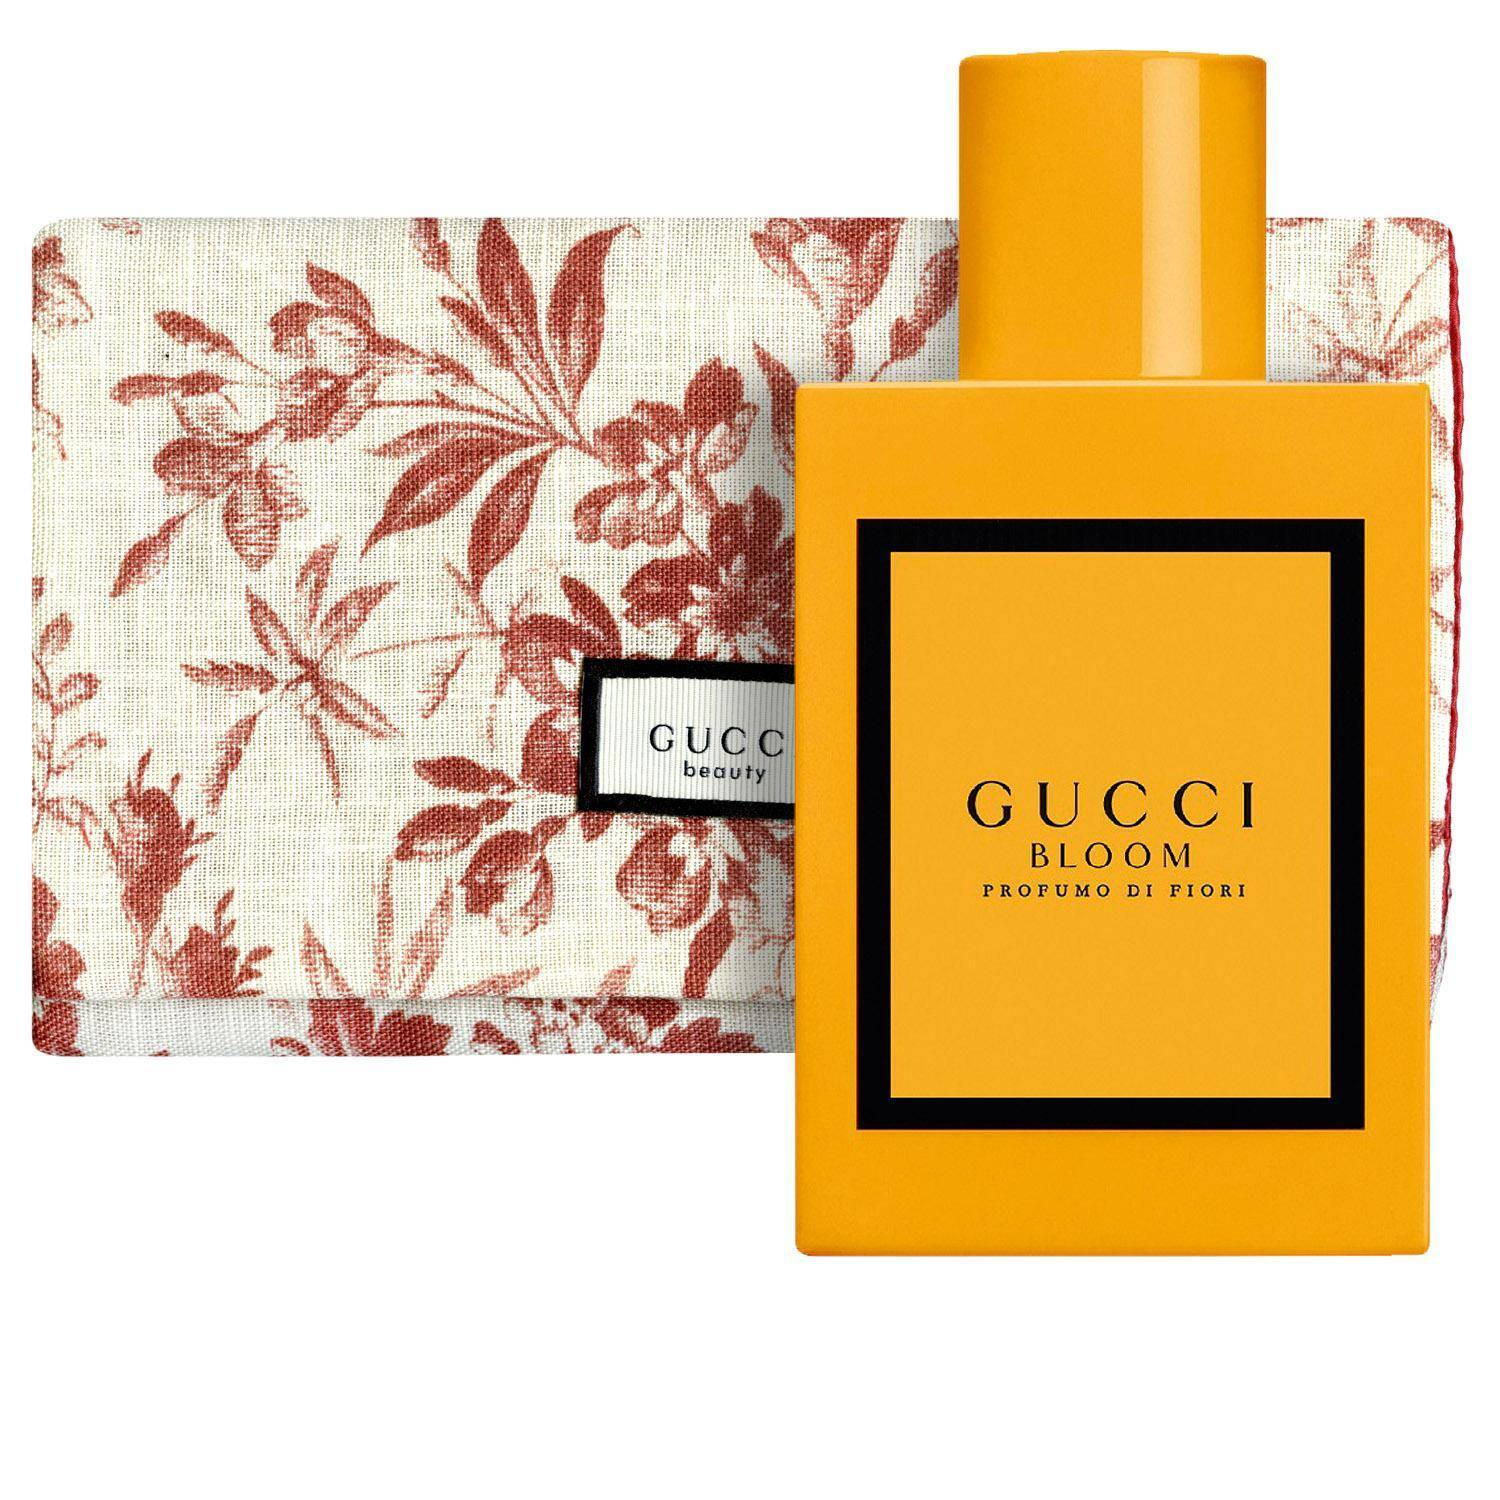 Gucci Bloom Profumo di Fiori EDP quick review